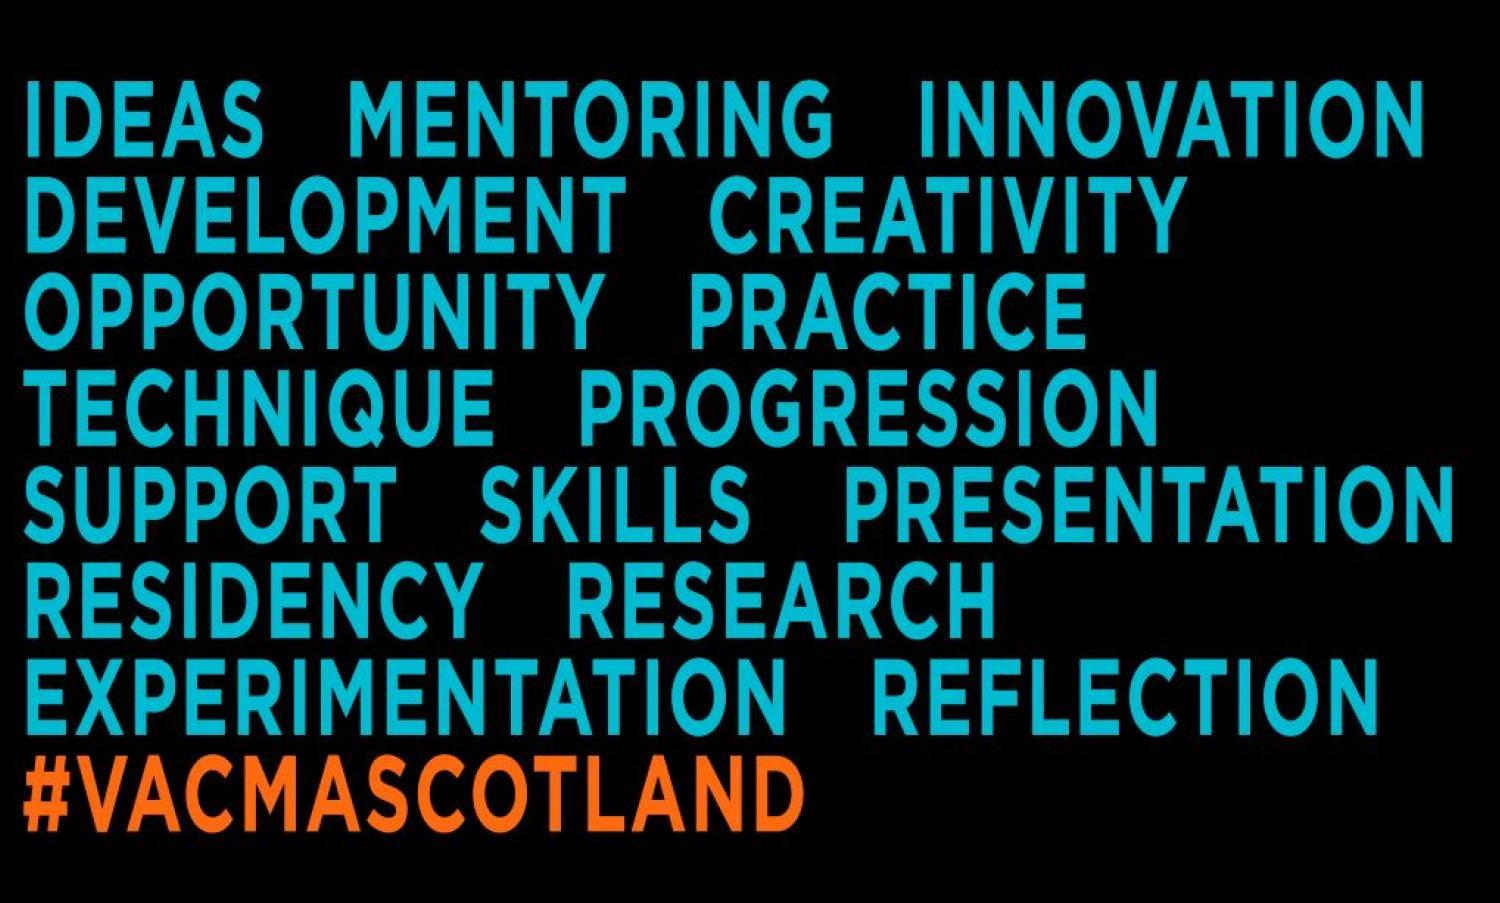 List of words associated with the grants scheme e.g mentoring, innovation, creativity.  Hashtag VACMA Scotland is at the foot of the image